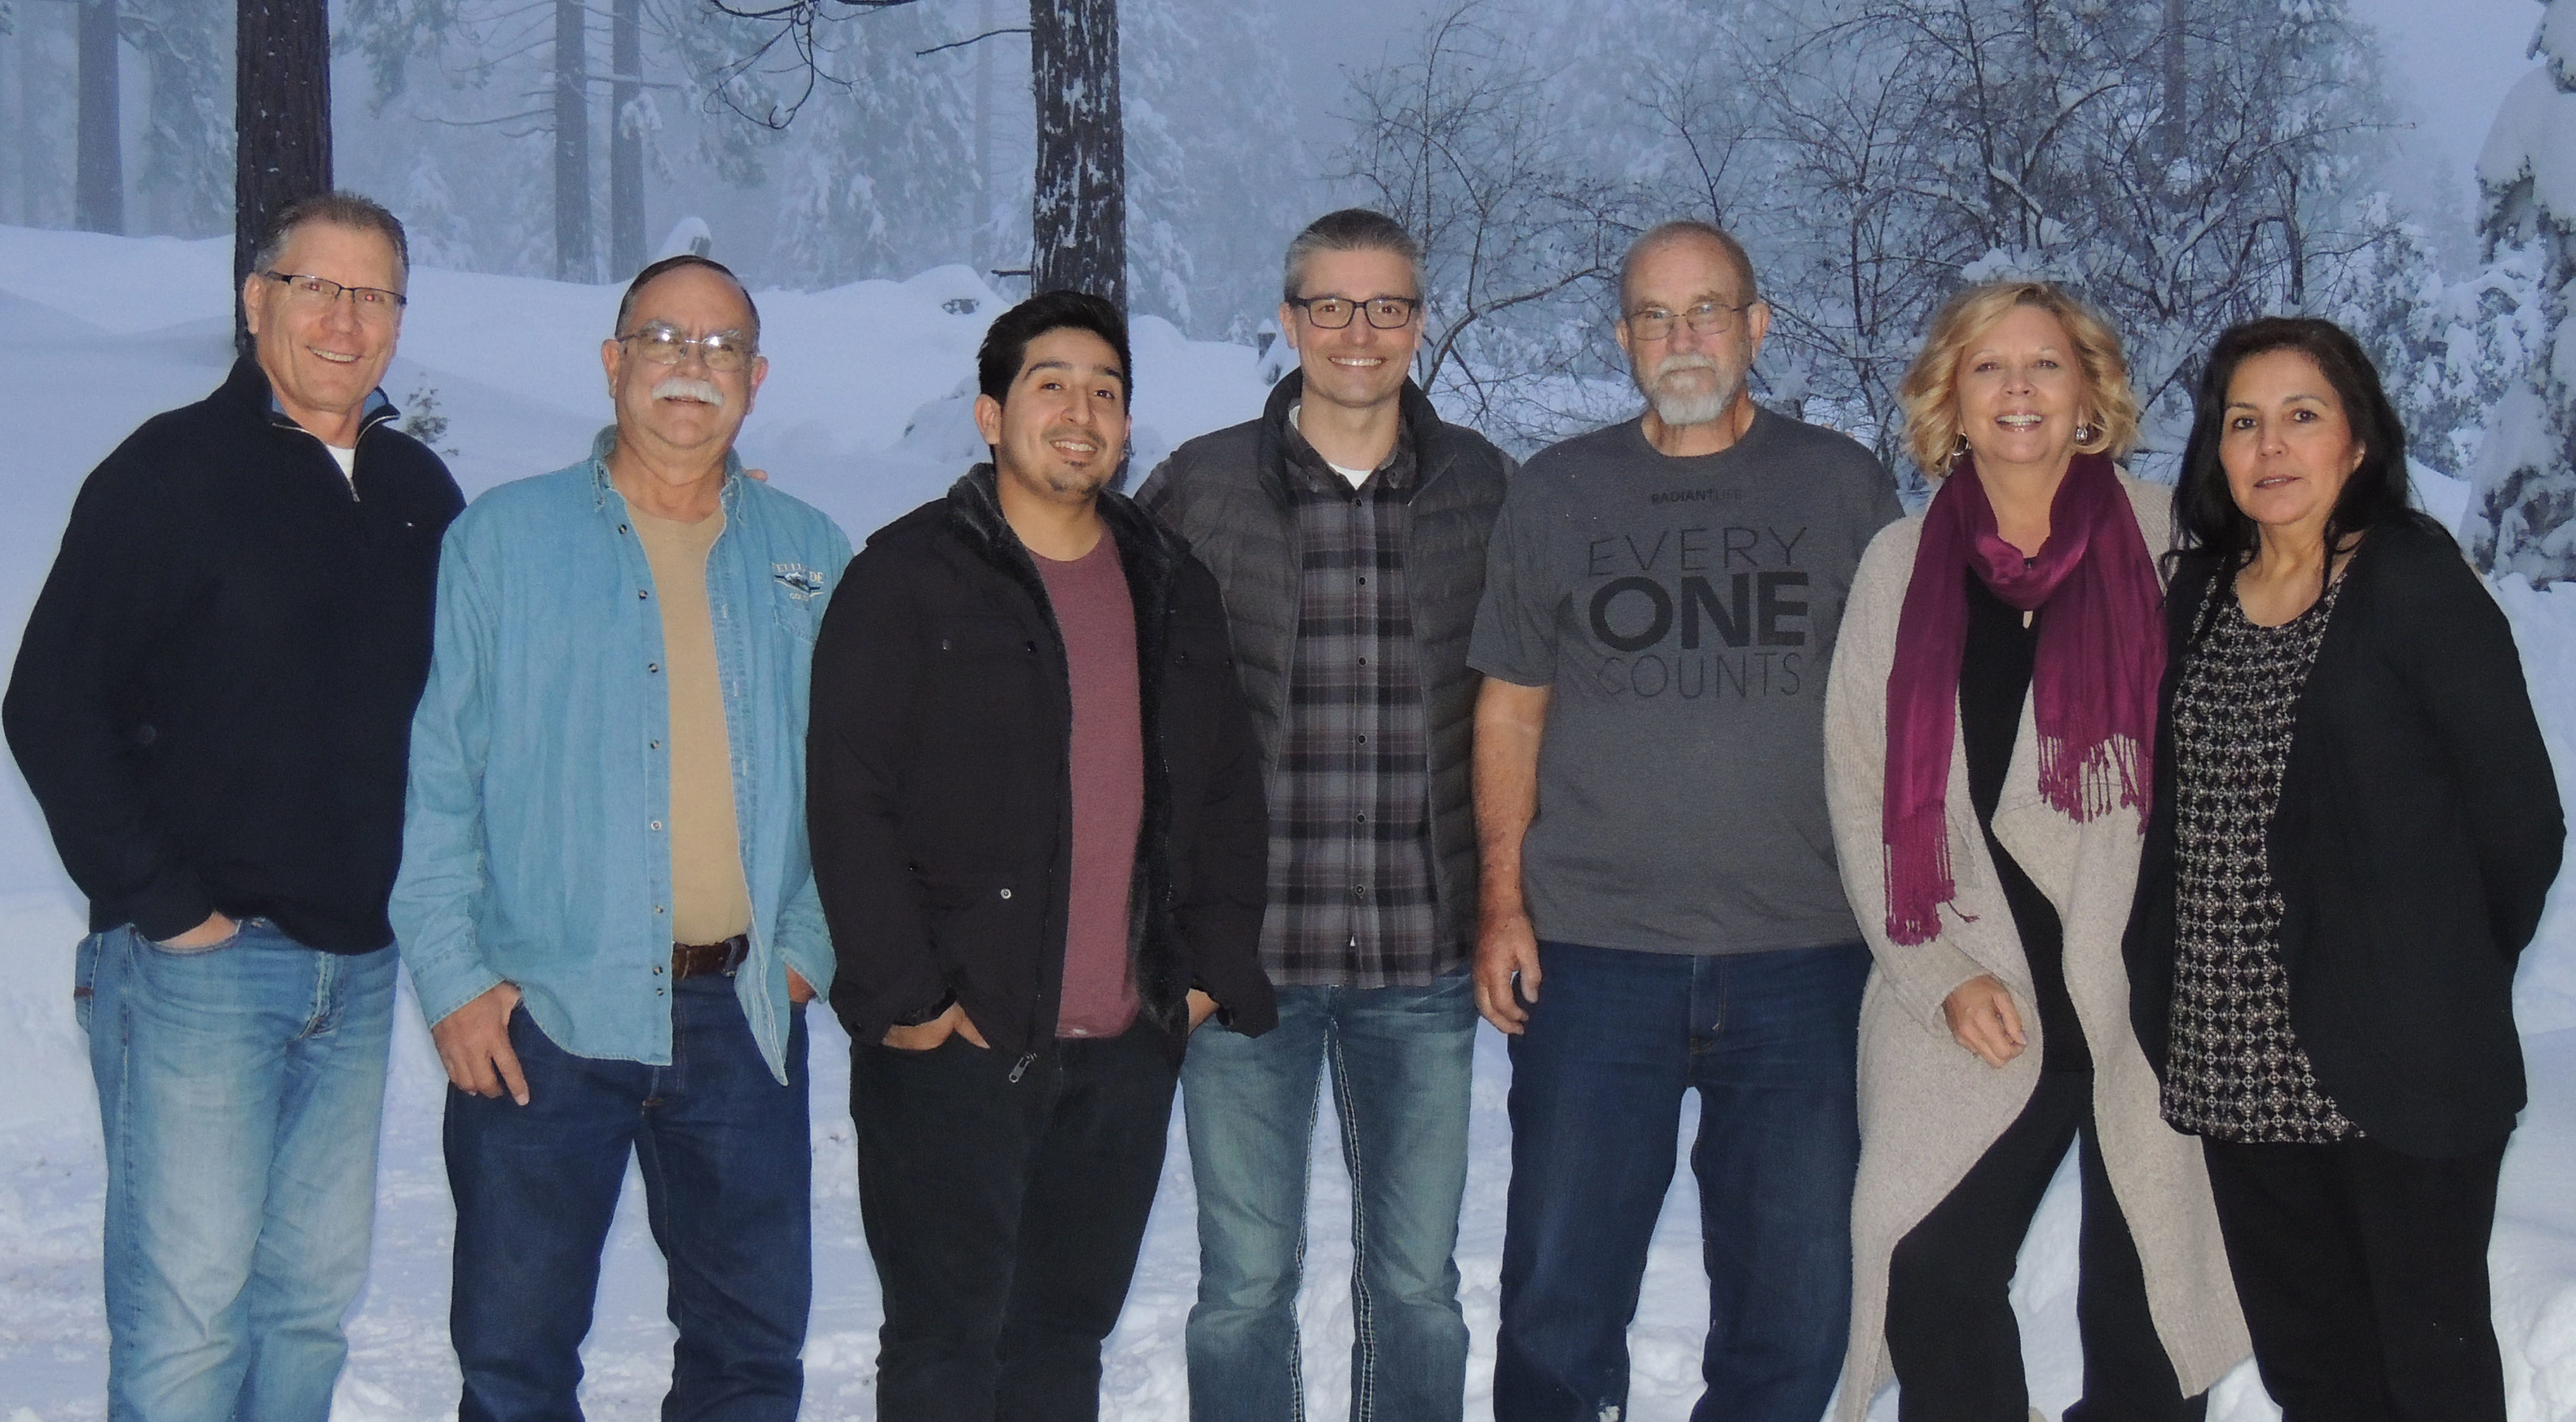 2018 Radiant Life Church Board: Rick Lambdin, Brad Nathan, Aaron Aguilar, Pastor Robert T Schlipp, Clay Follett, April Bettencourt, and Lydia Lerma.